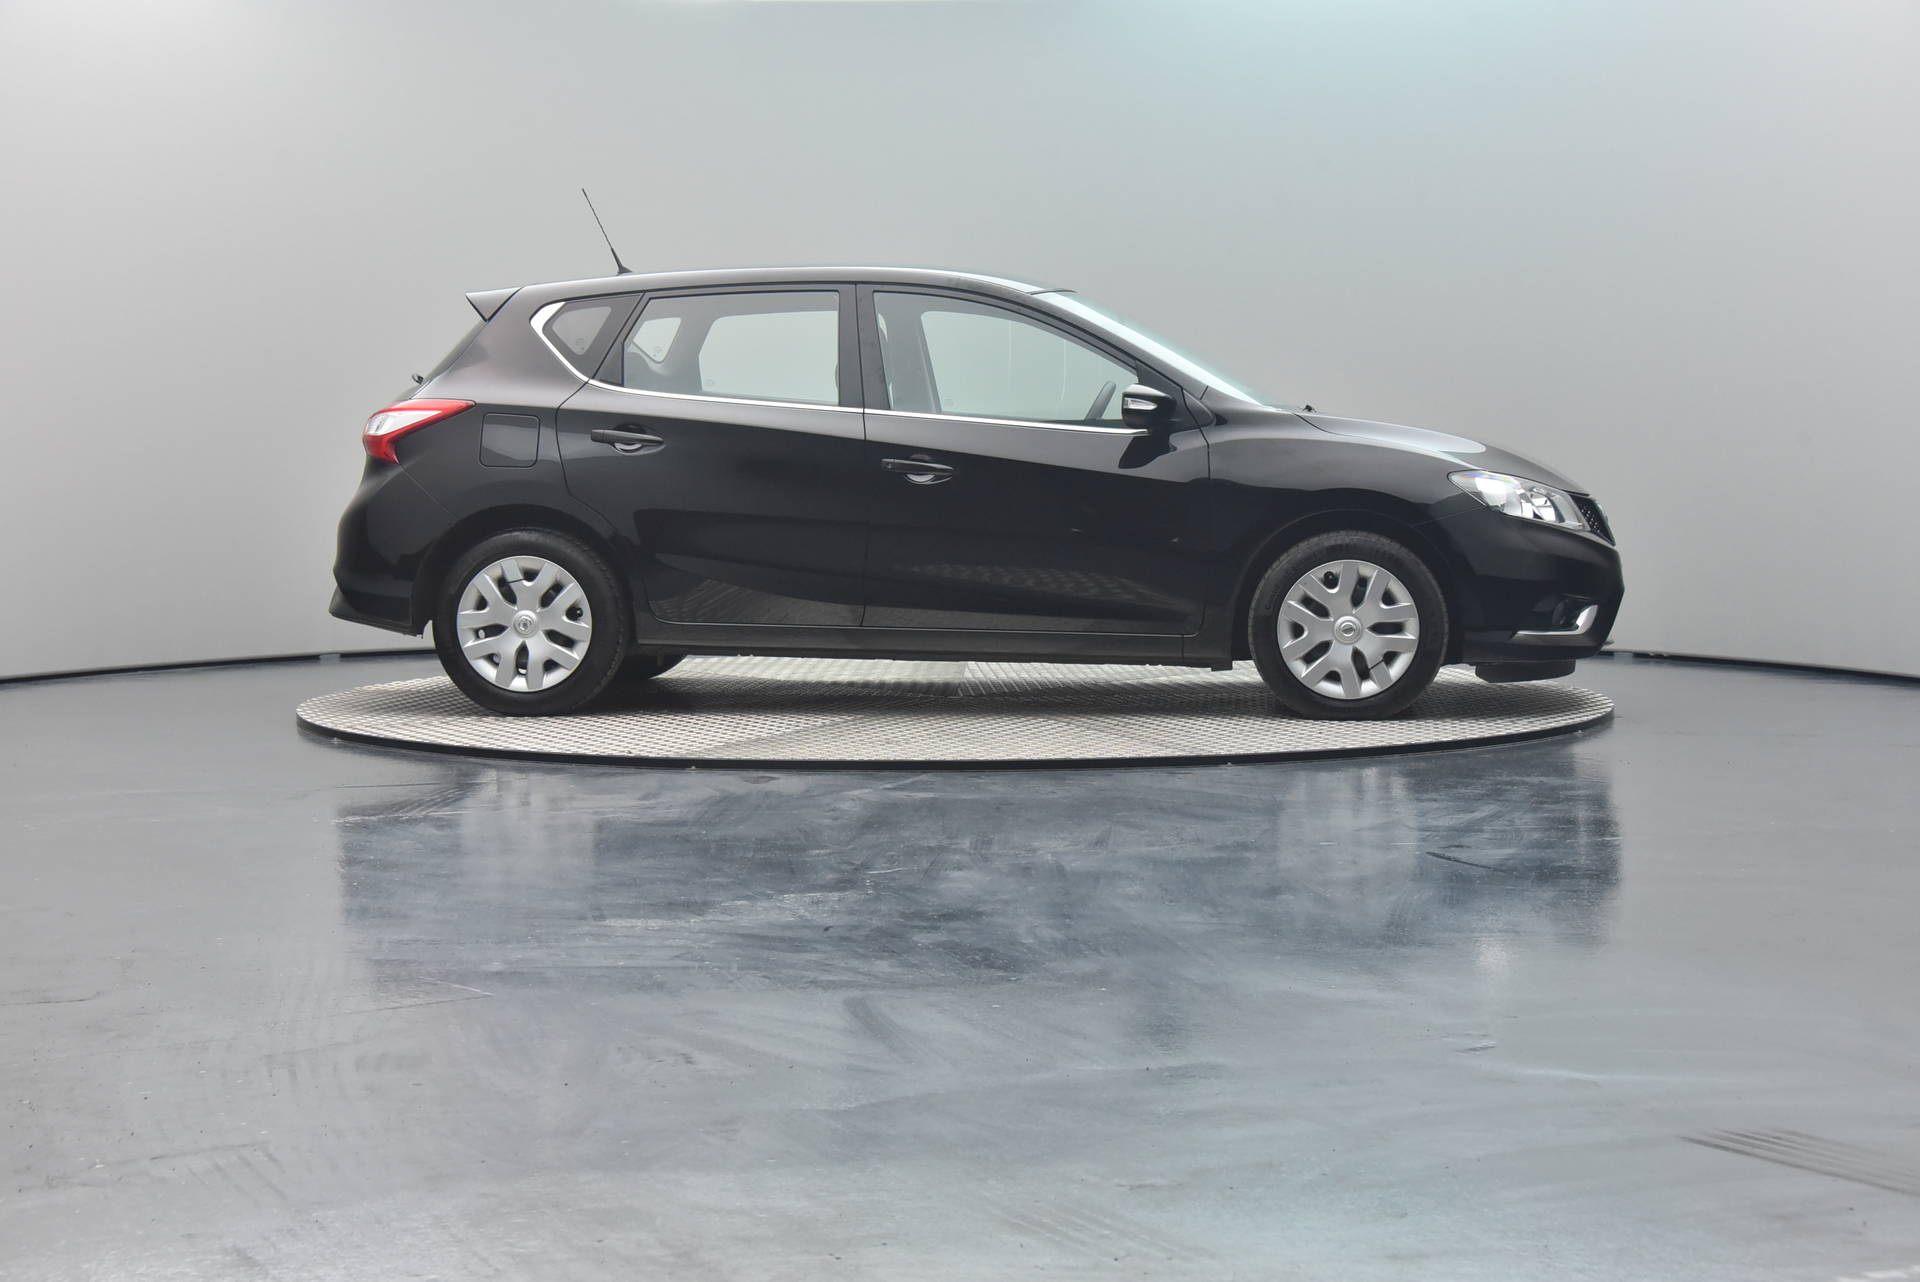 Nissan Pulsar 1.5 Dci Xe, 360-image32